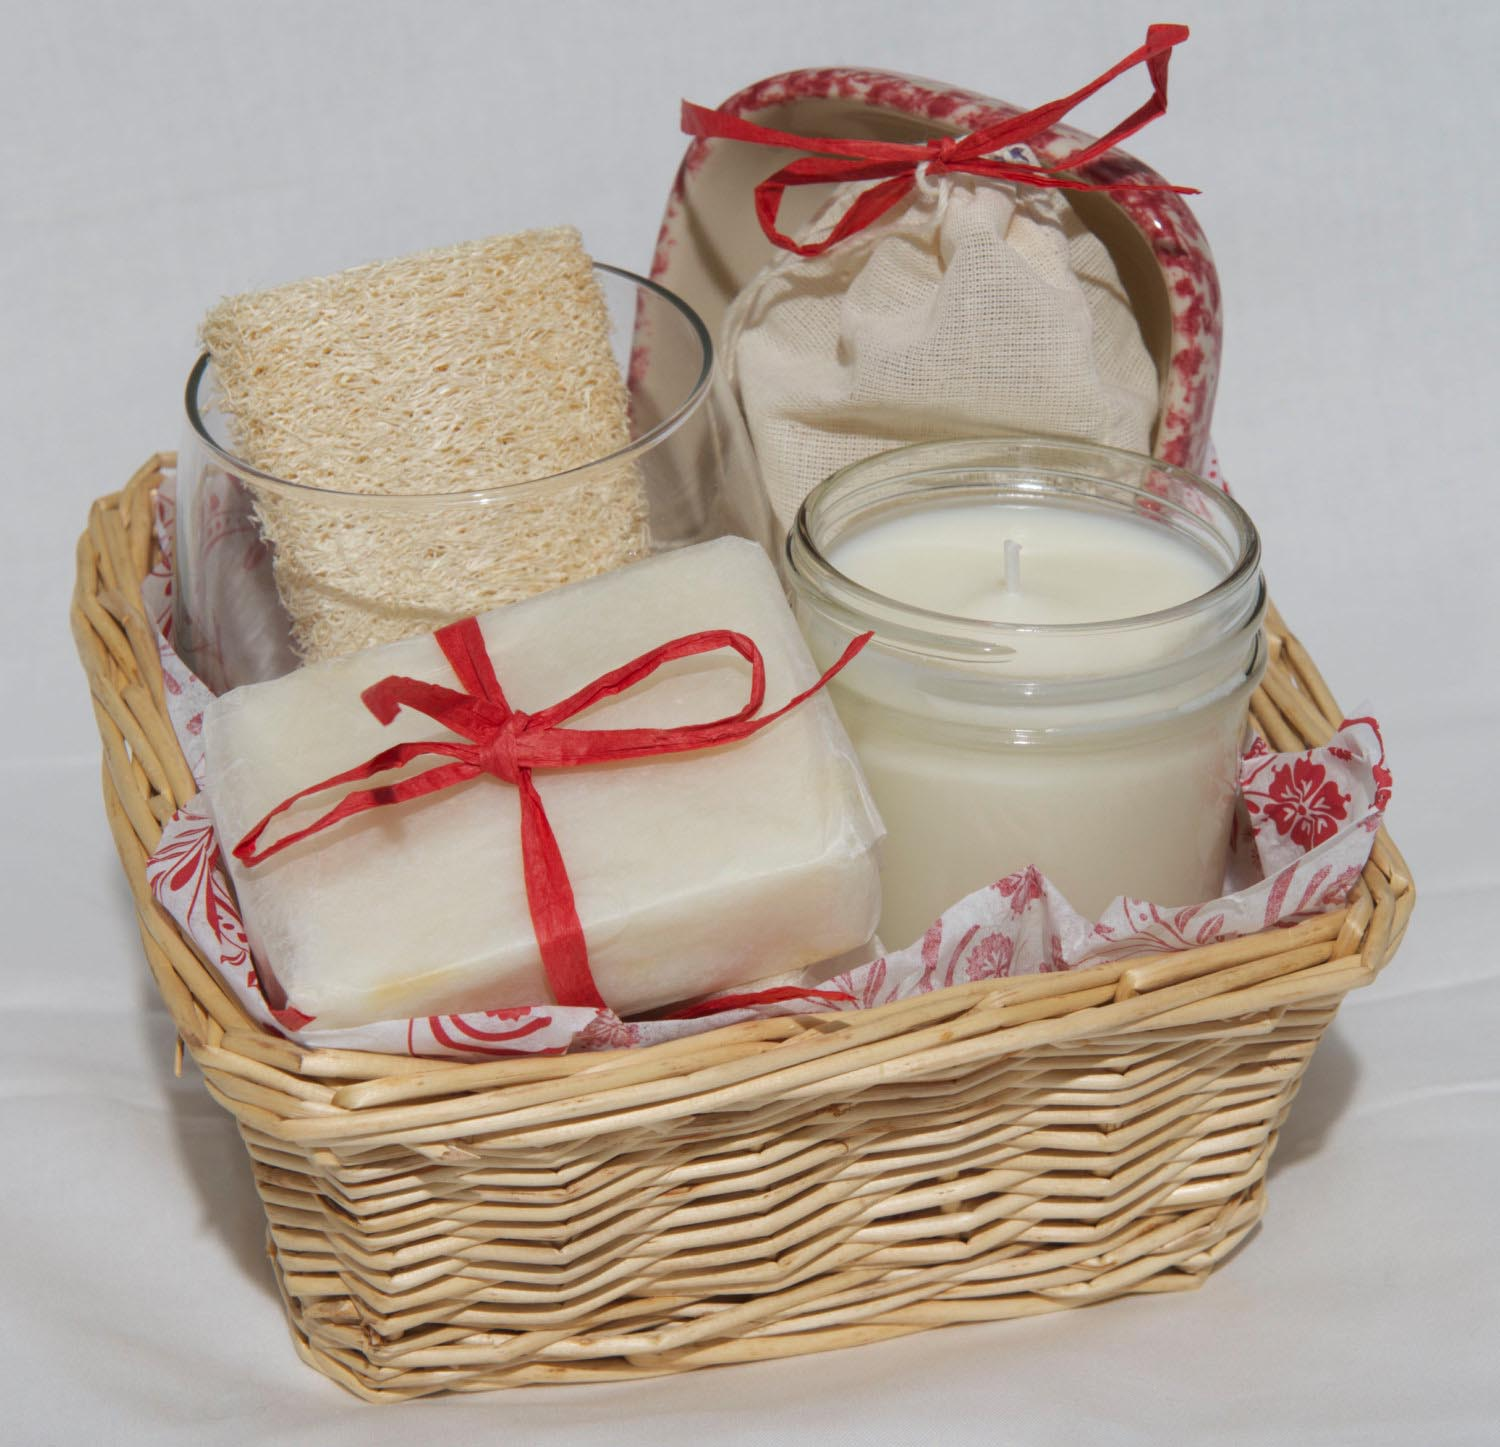 Homemade Spa Gift Baskets